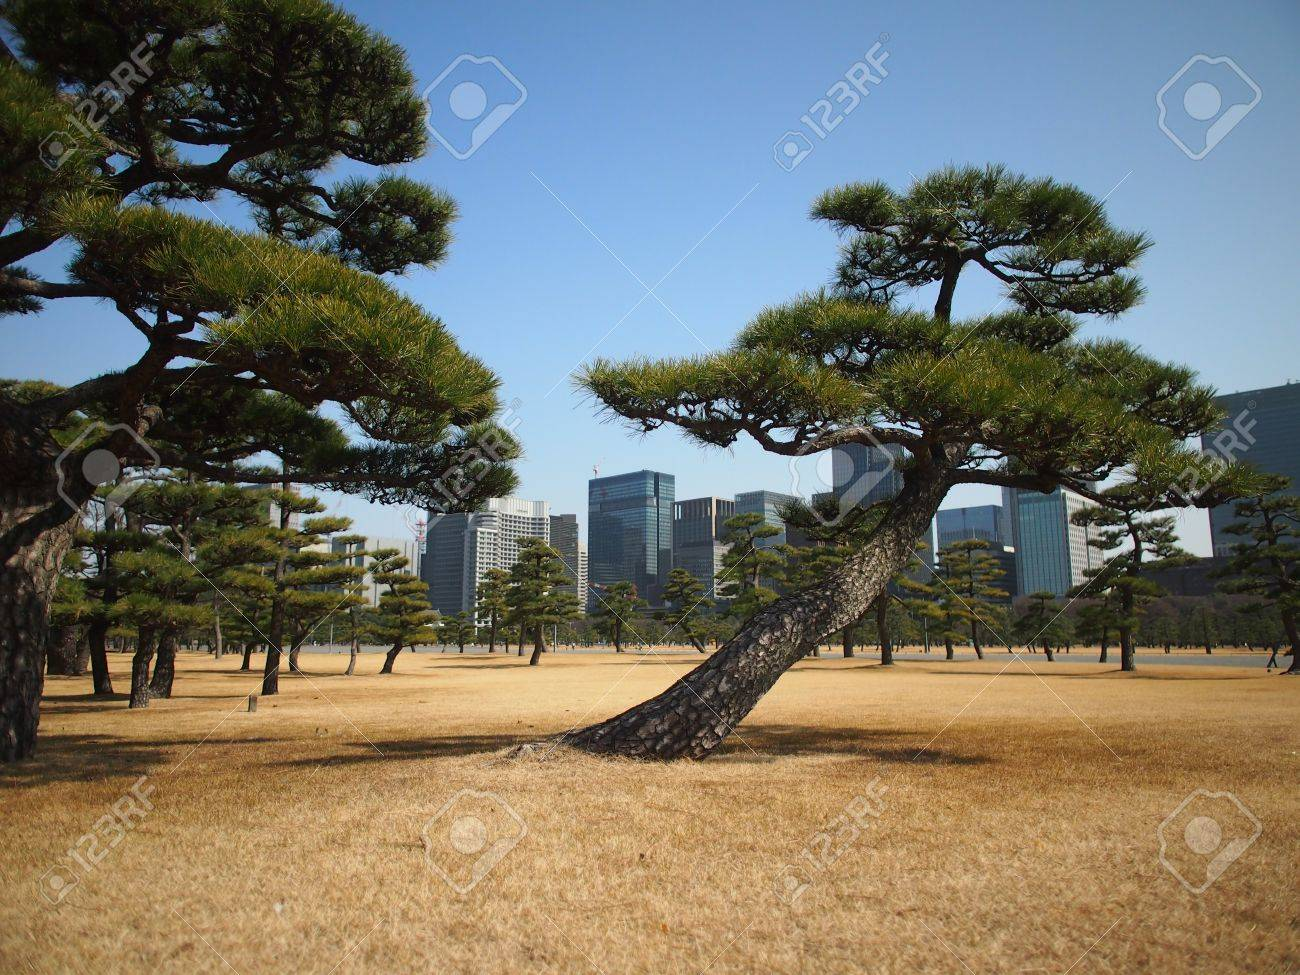 Traditional Japanese Style Pine tree with Modern Building skyline background Stock Photo - 18365993